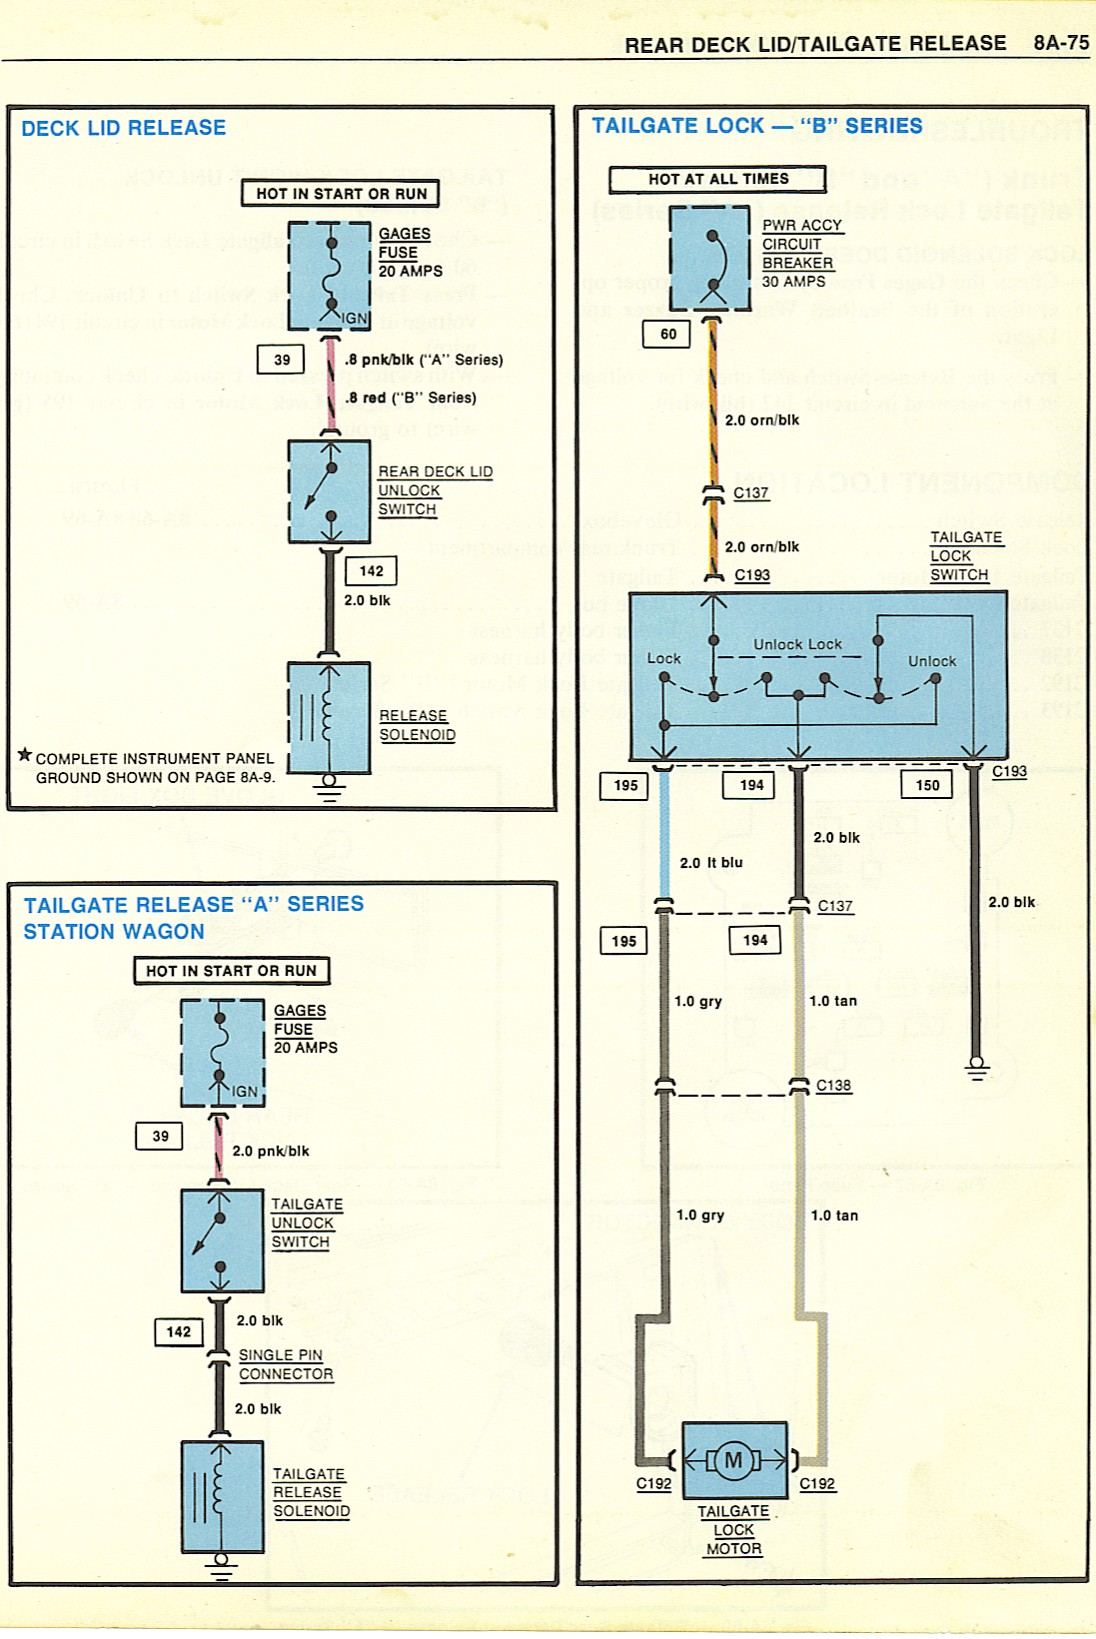 Wiring Diagrams on corolla starter wiring diagram, cavalier starter wiring diagram, 1969 chevelle starter wiring diagram, 1972 chevelle starter wiring diagram, s10 starter wiring diagram, expedition starter wiring diagram, mustang starter wiring diagram, 1966 chevelle starter wiring diagram, 1970 chevelle starter wiring diagram, envoy starter wiring diagram, f150 starter wiring diagram,